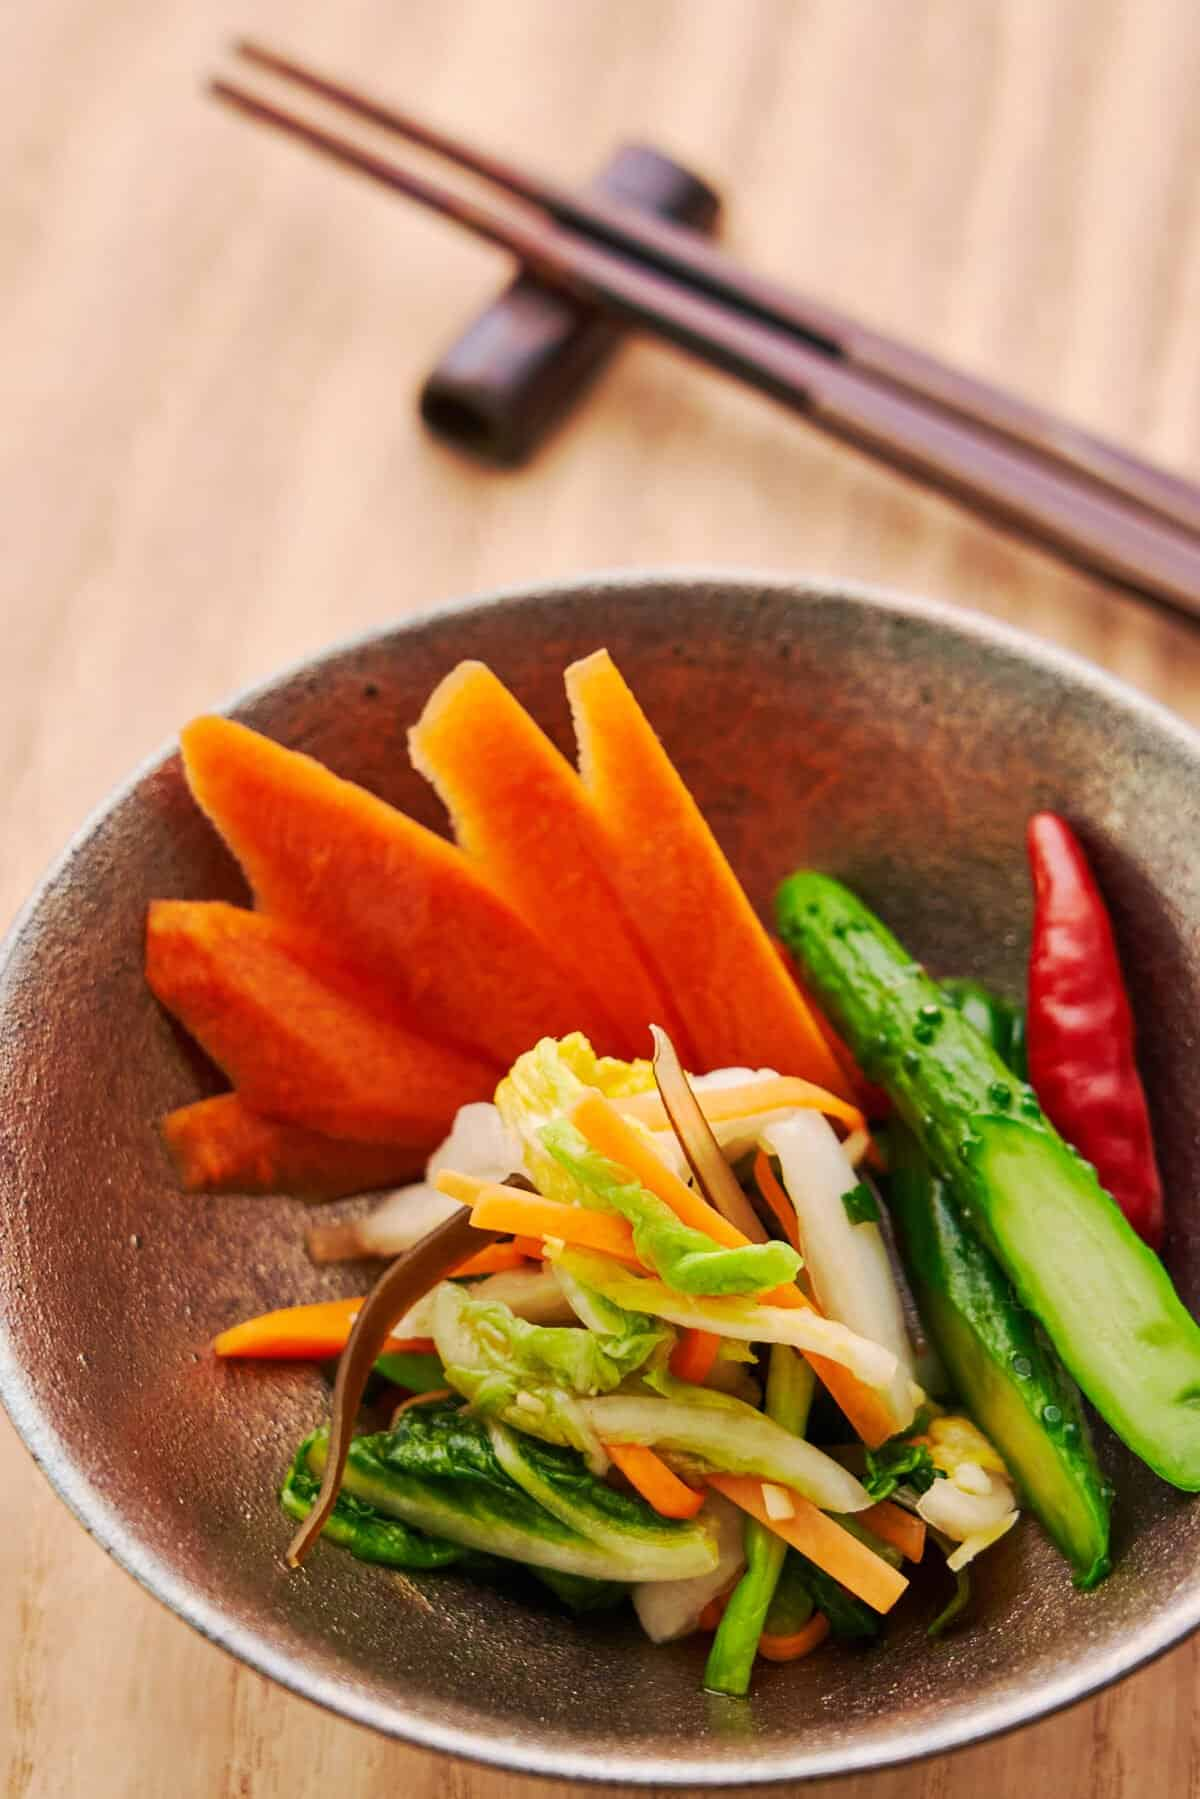 Pickling is a great way to preserve fresh vegetables, and this tutorial includes three easy ways to make traditional Japanese Pickles.